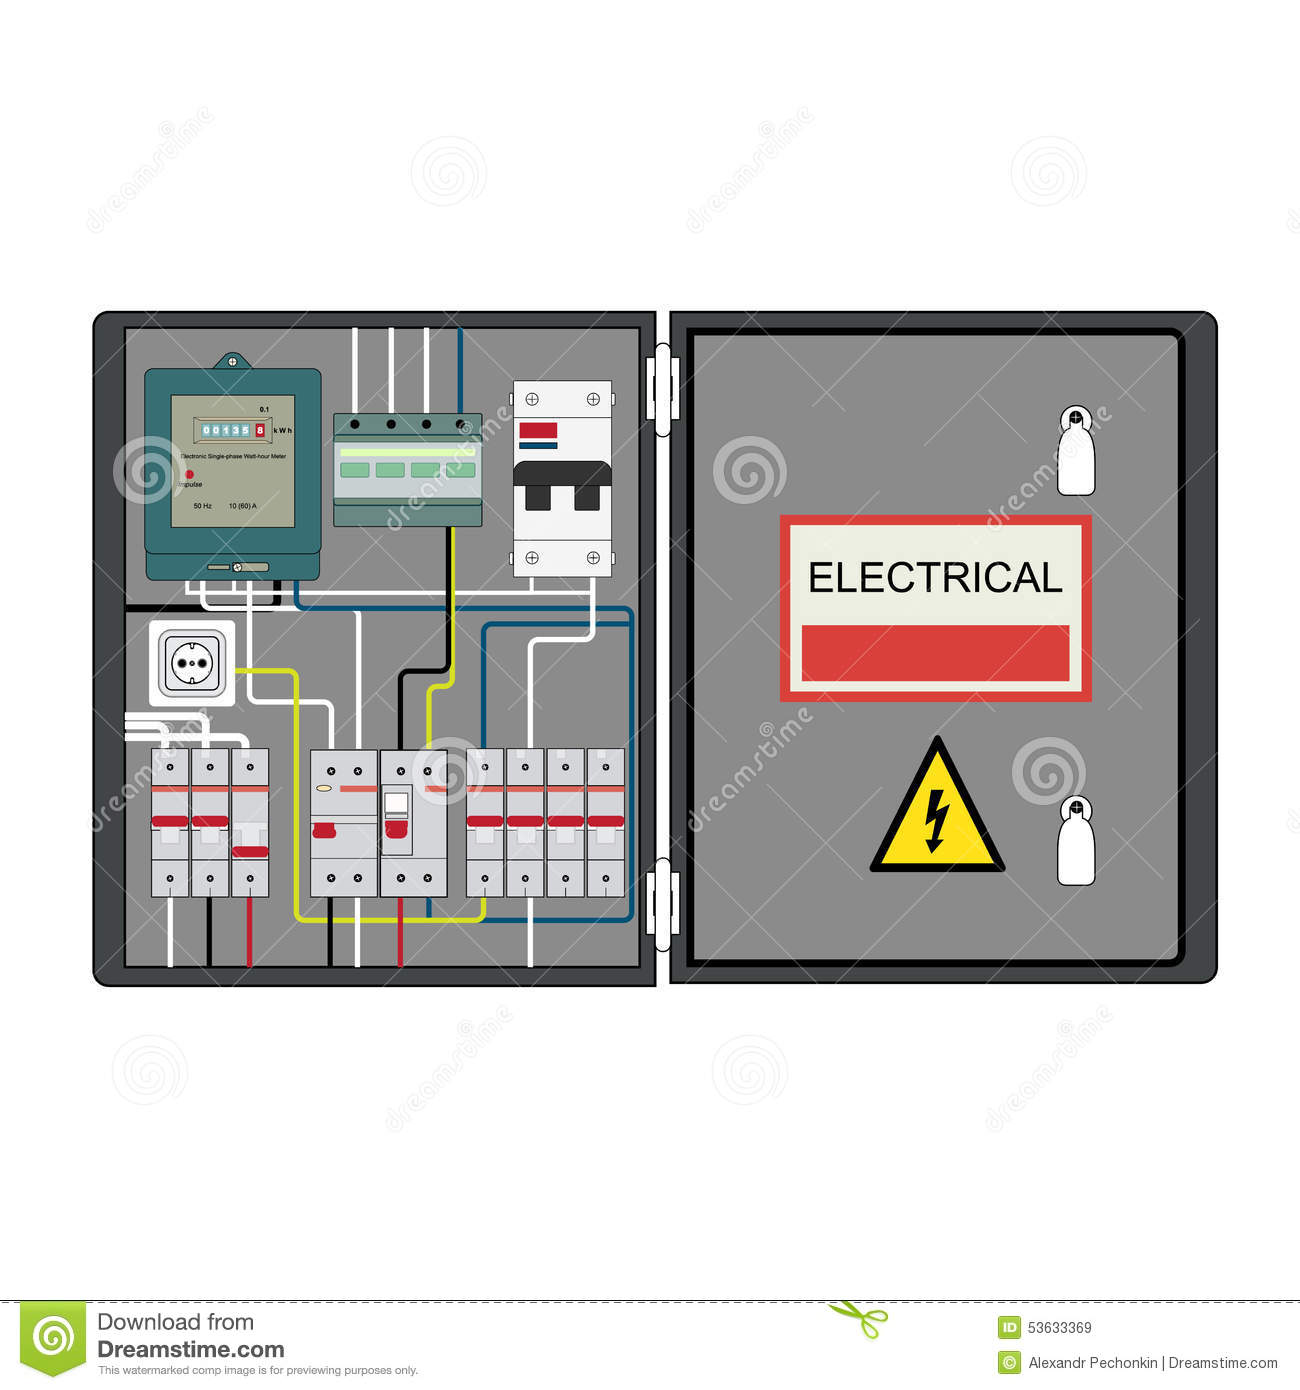 hight resolution of picture of the electrical panel electric meter and circuit breakers